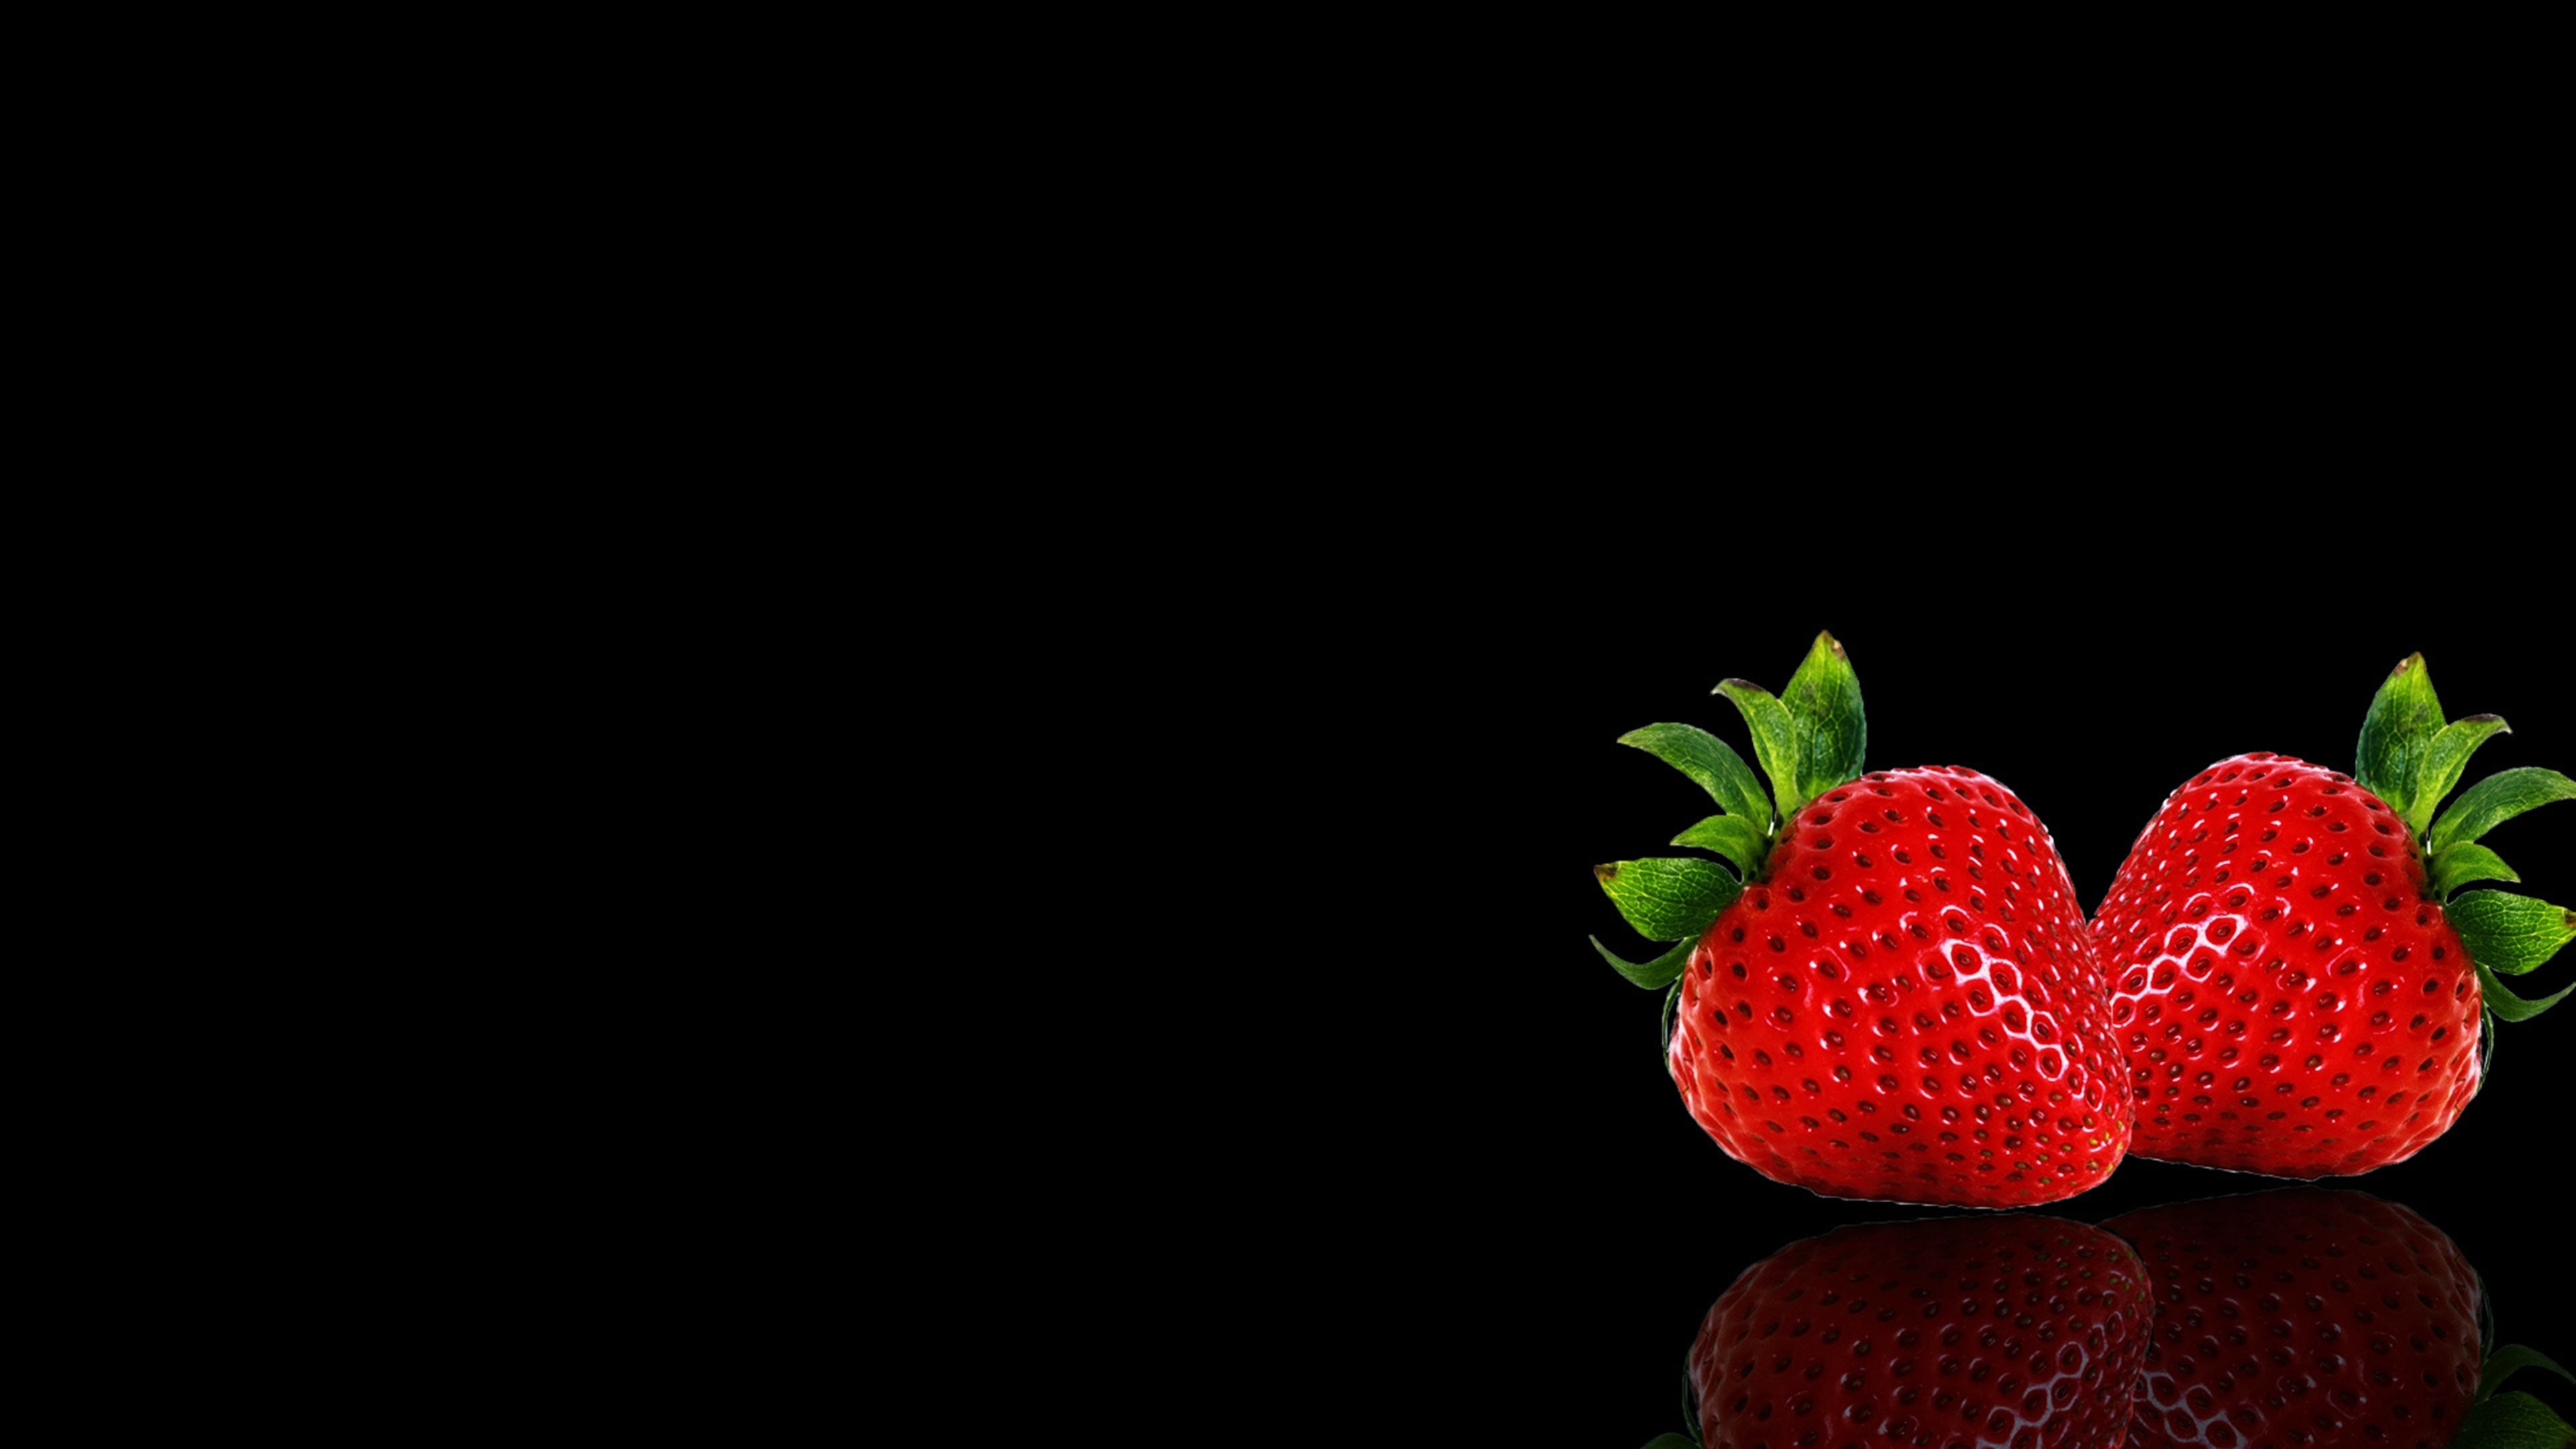 Res: 3840x2160, Apple background black fruits wallpapers Strawberry wallpaper |  |  655970 | WallpaperUP